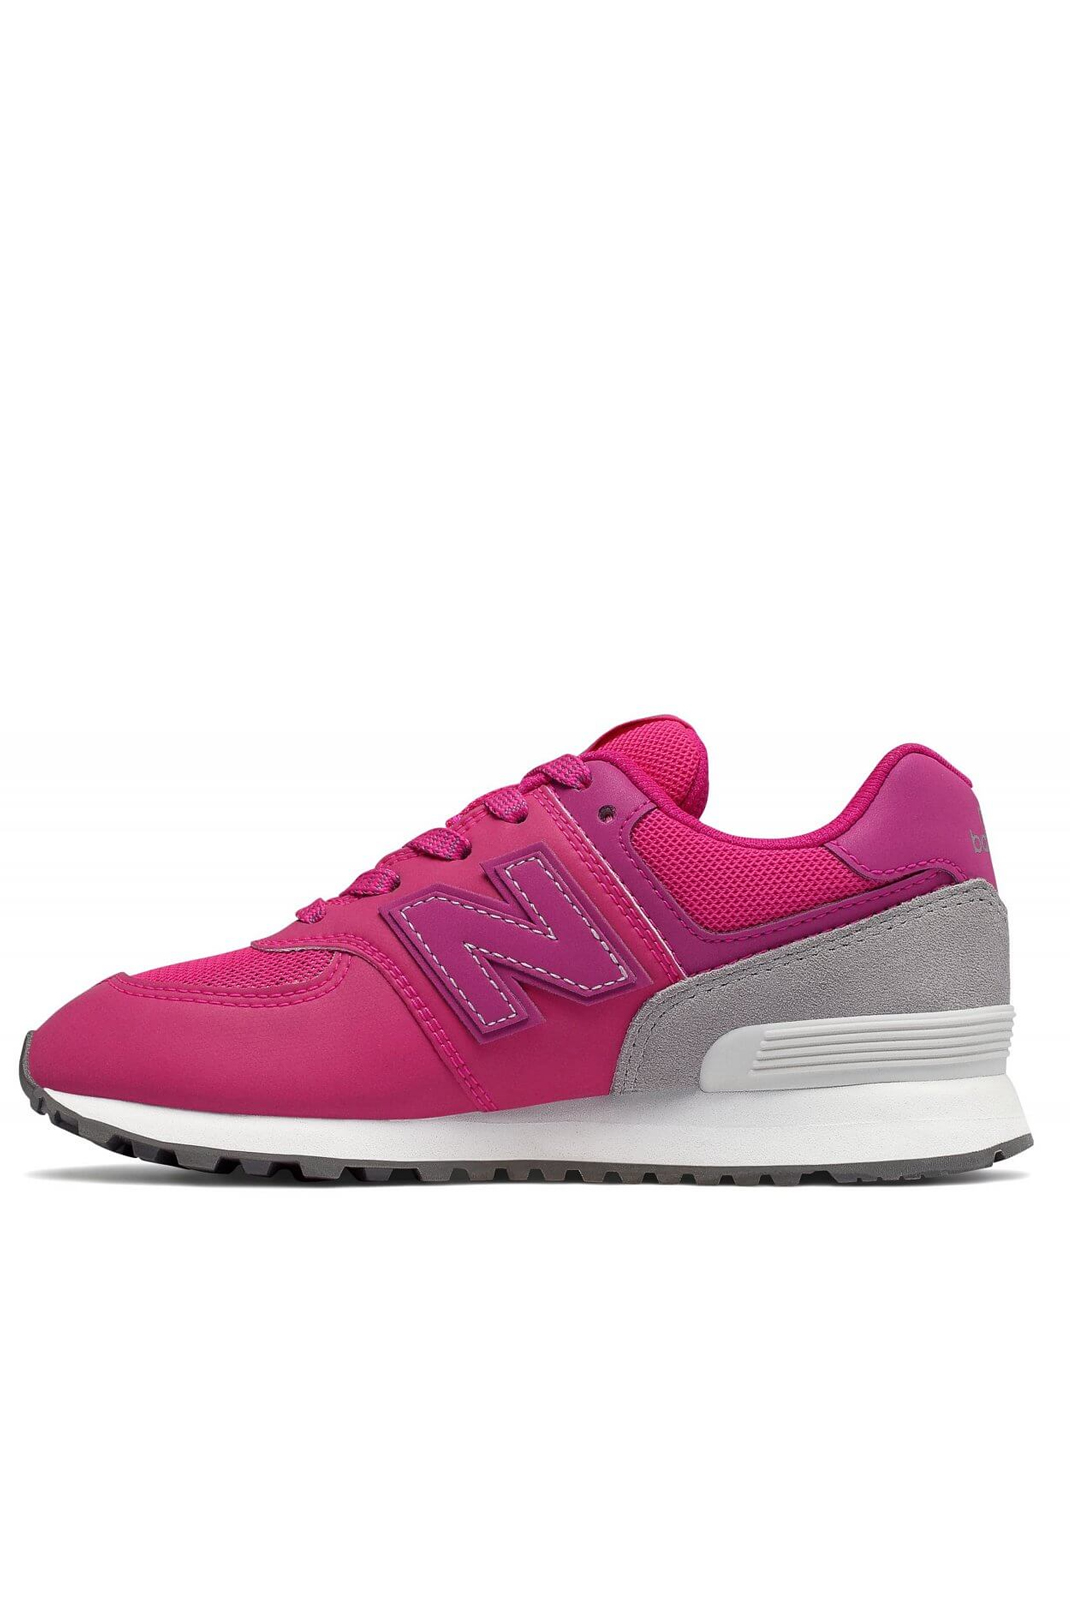 Baskets / Sneakers  New balance PC574D6 rose